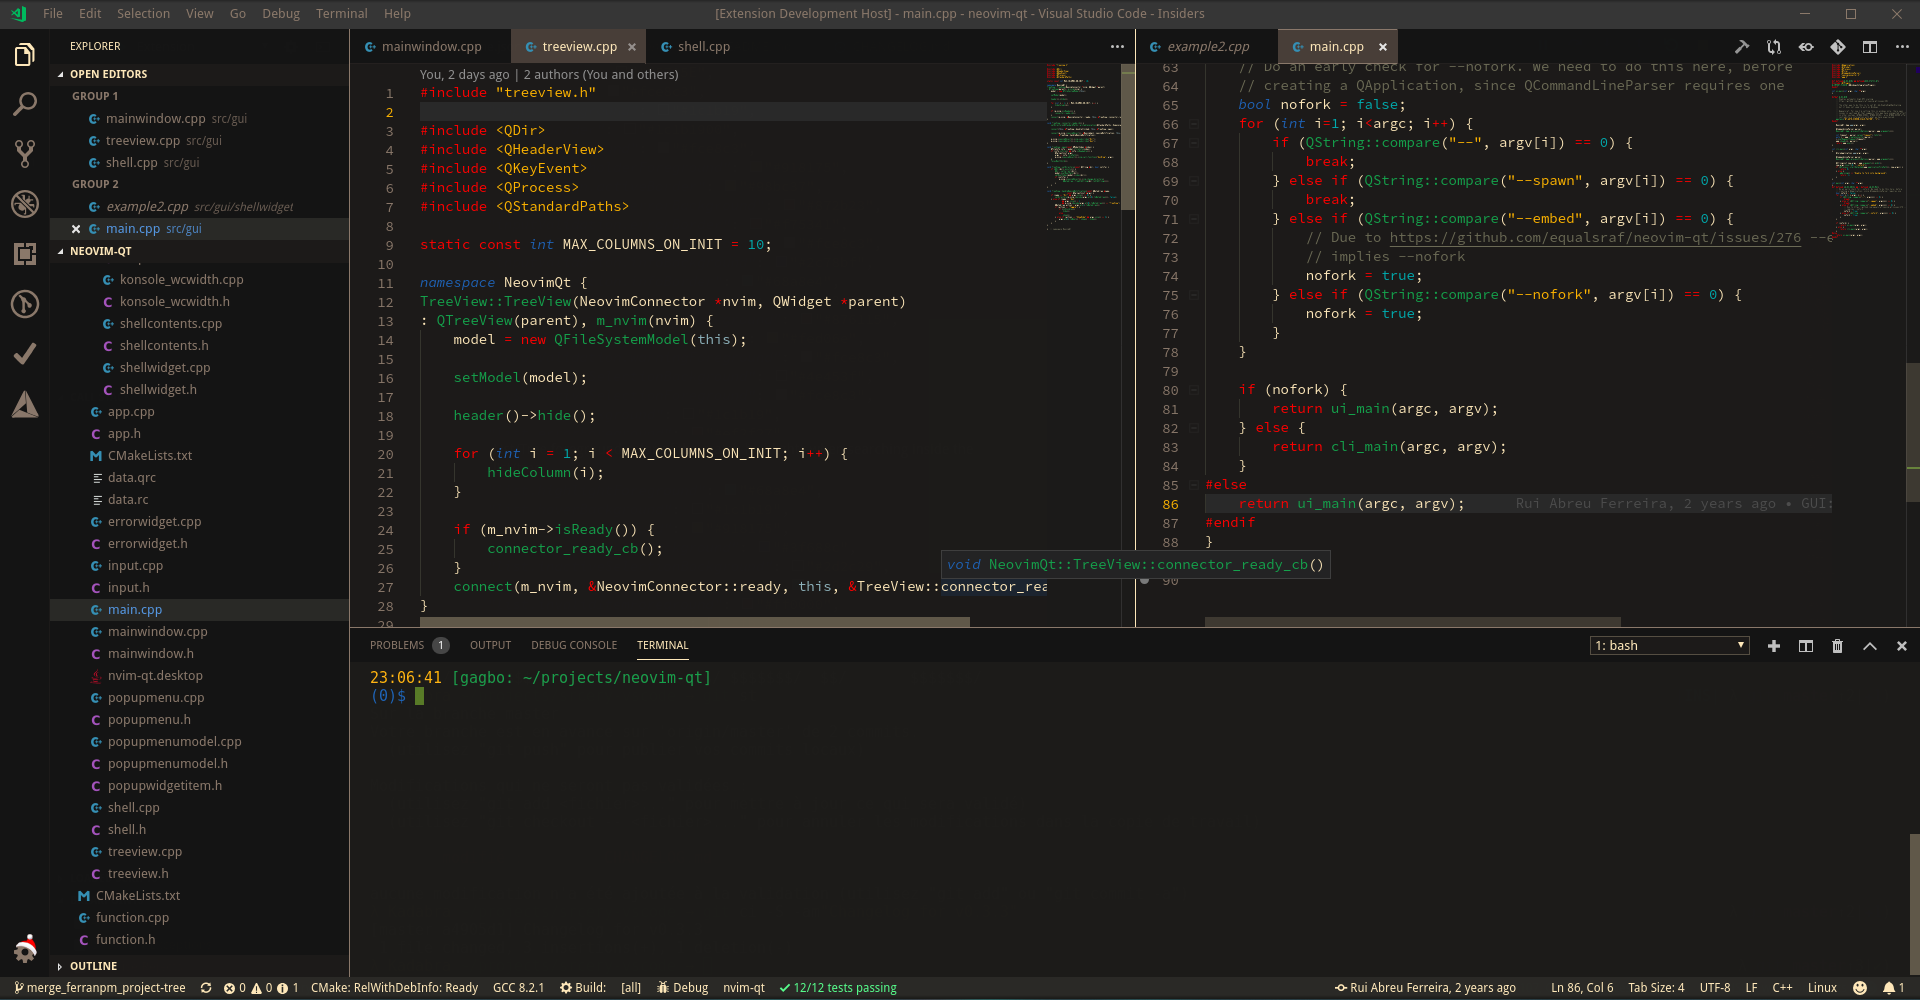 Screenshot of neovim-qt code